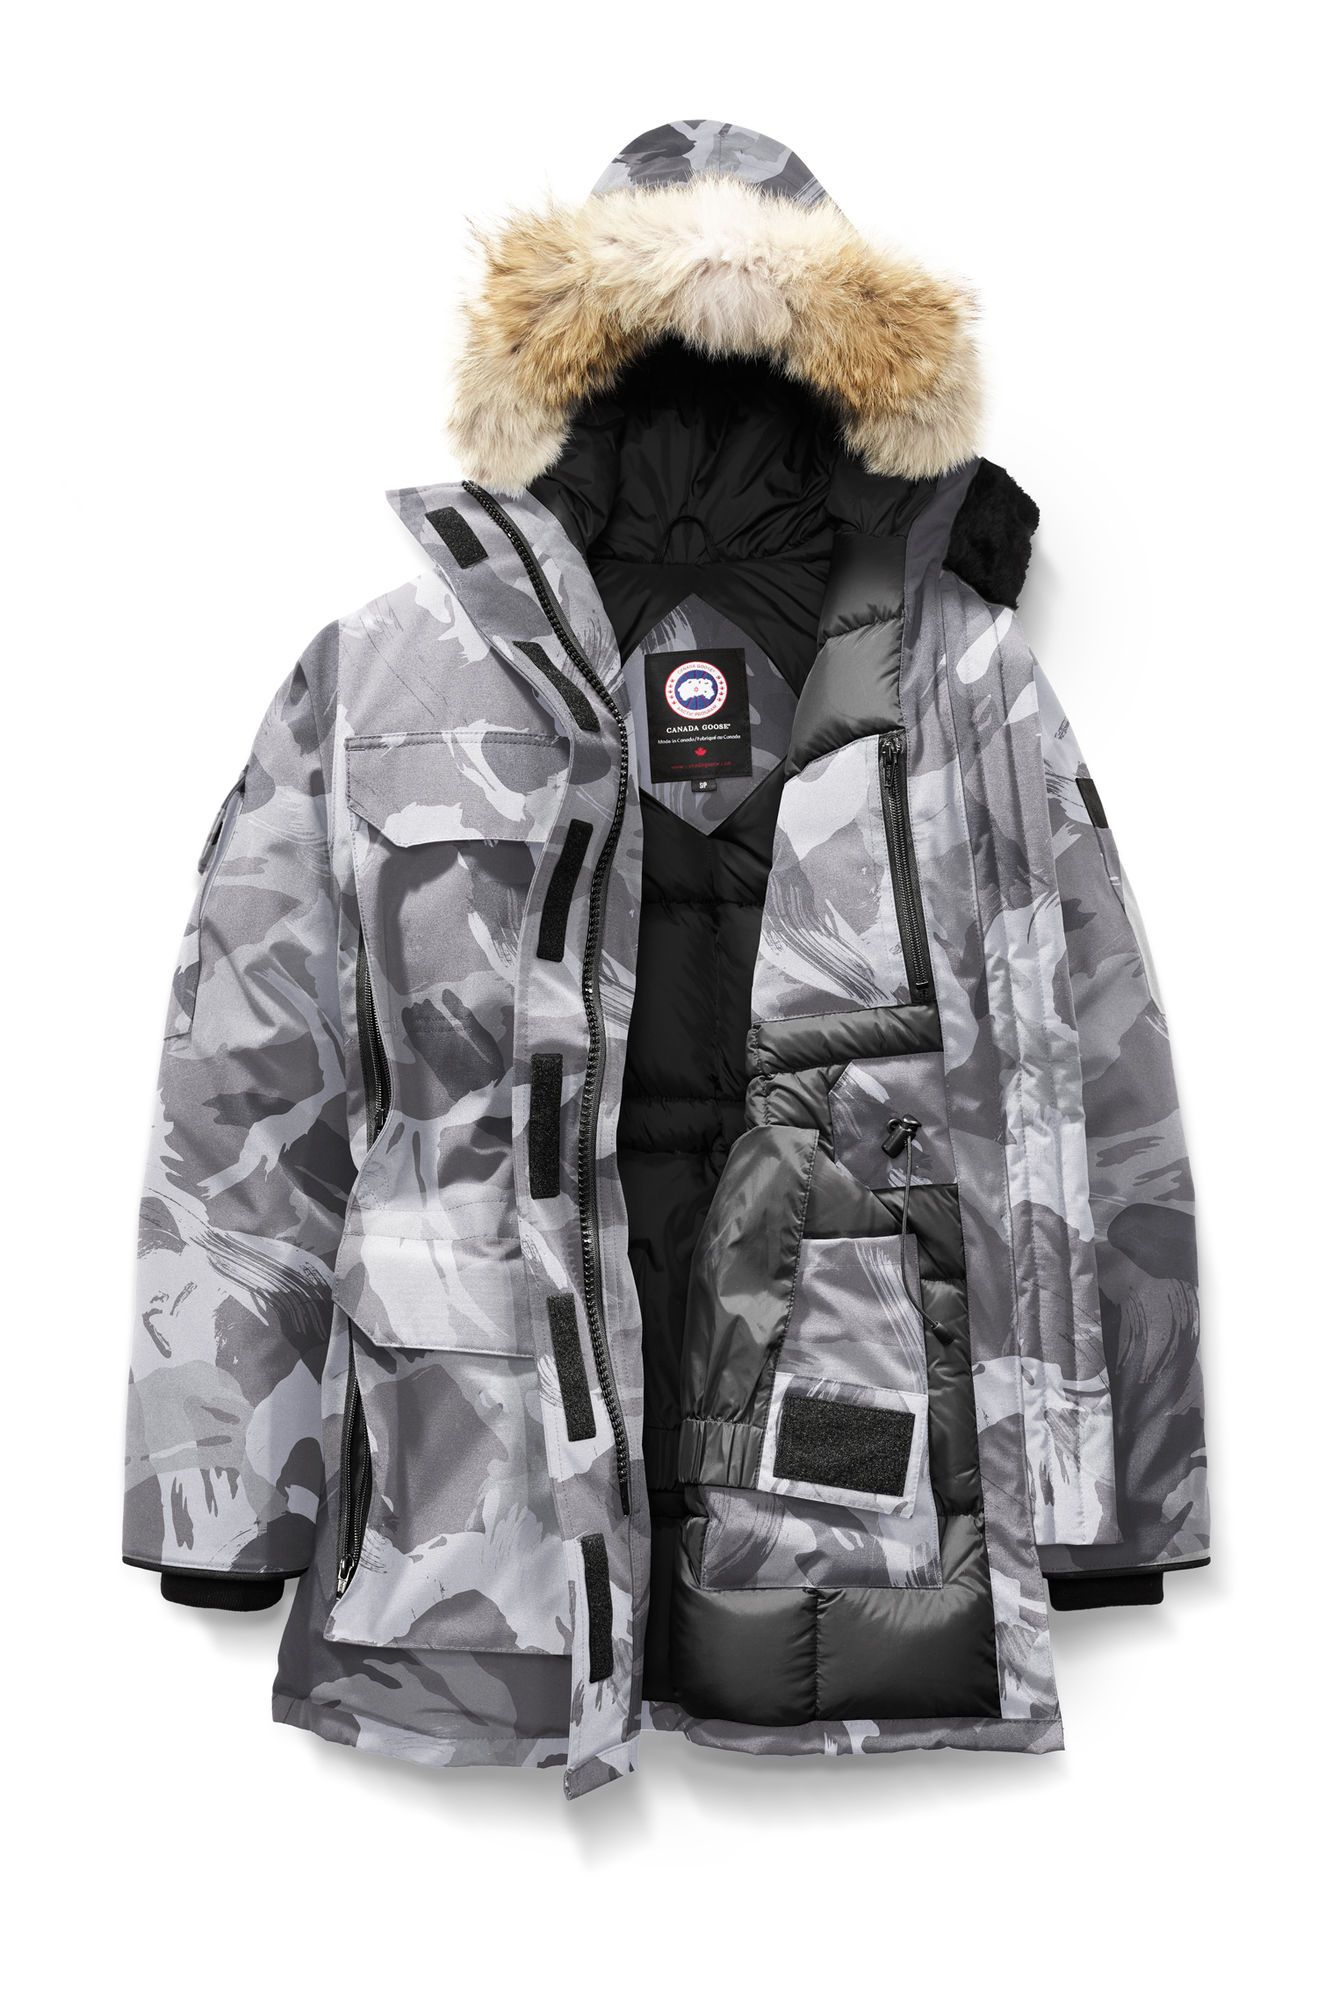 canada goose expedition parka gray camo  87e8b86dd0